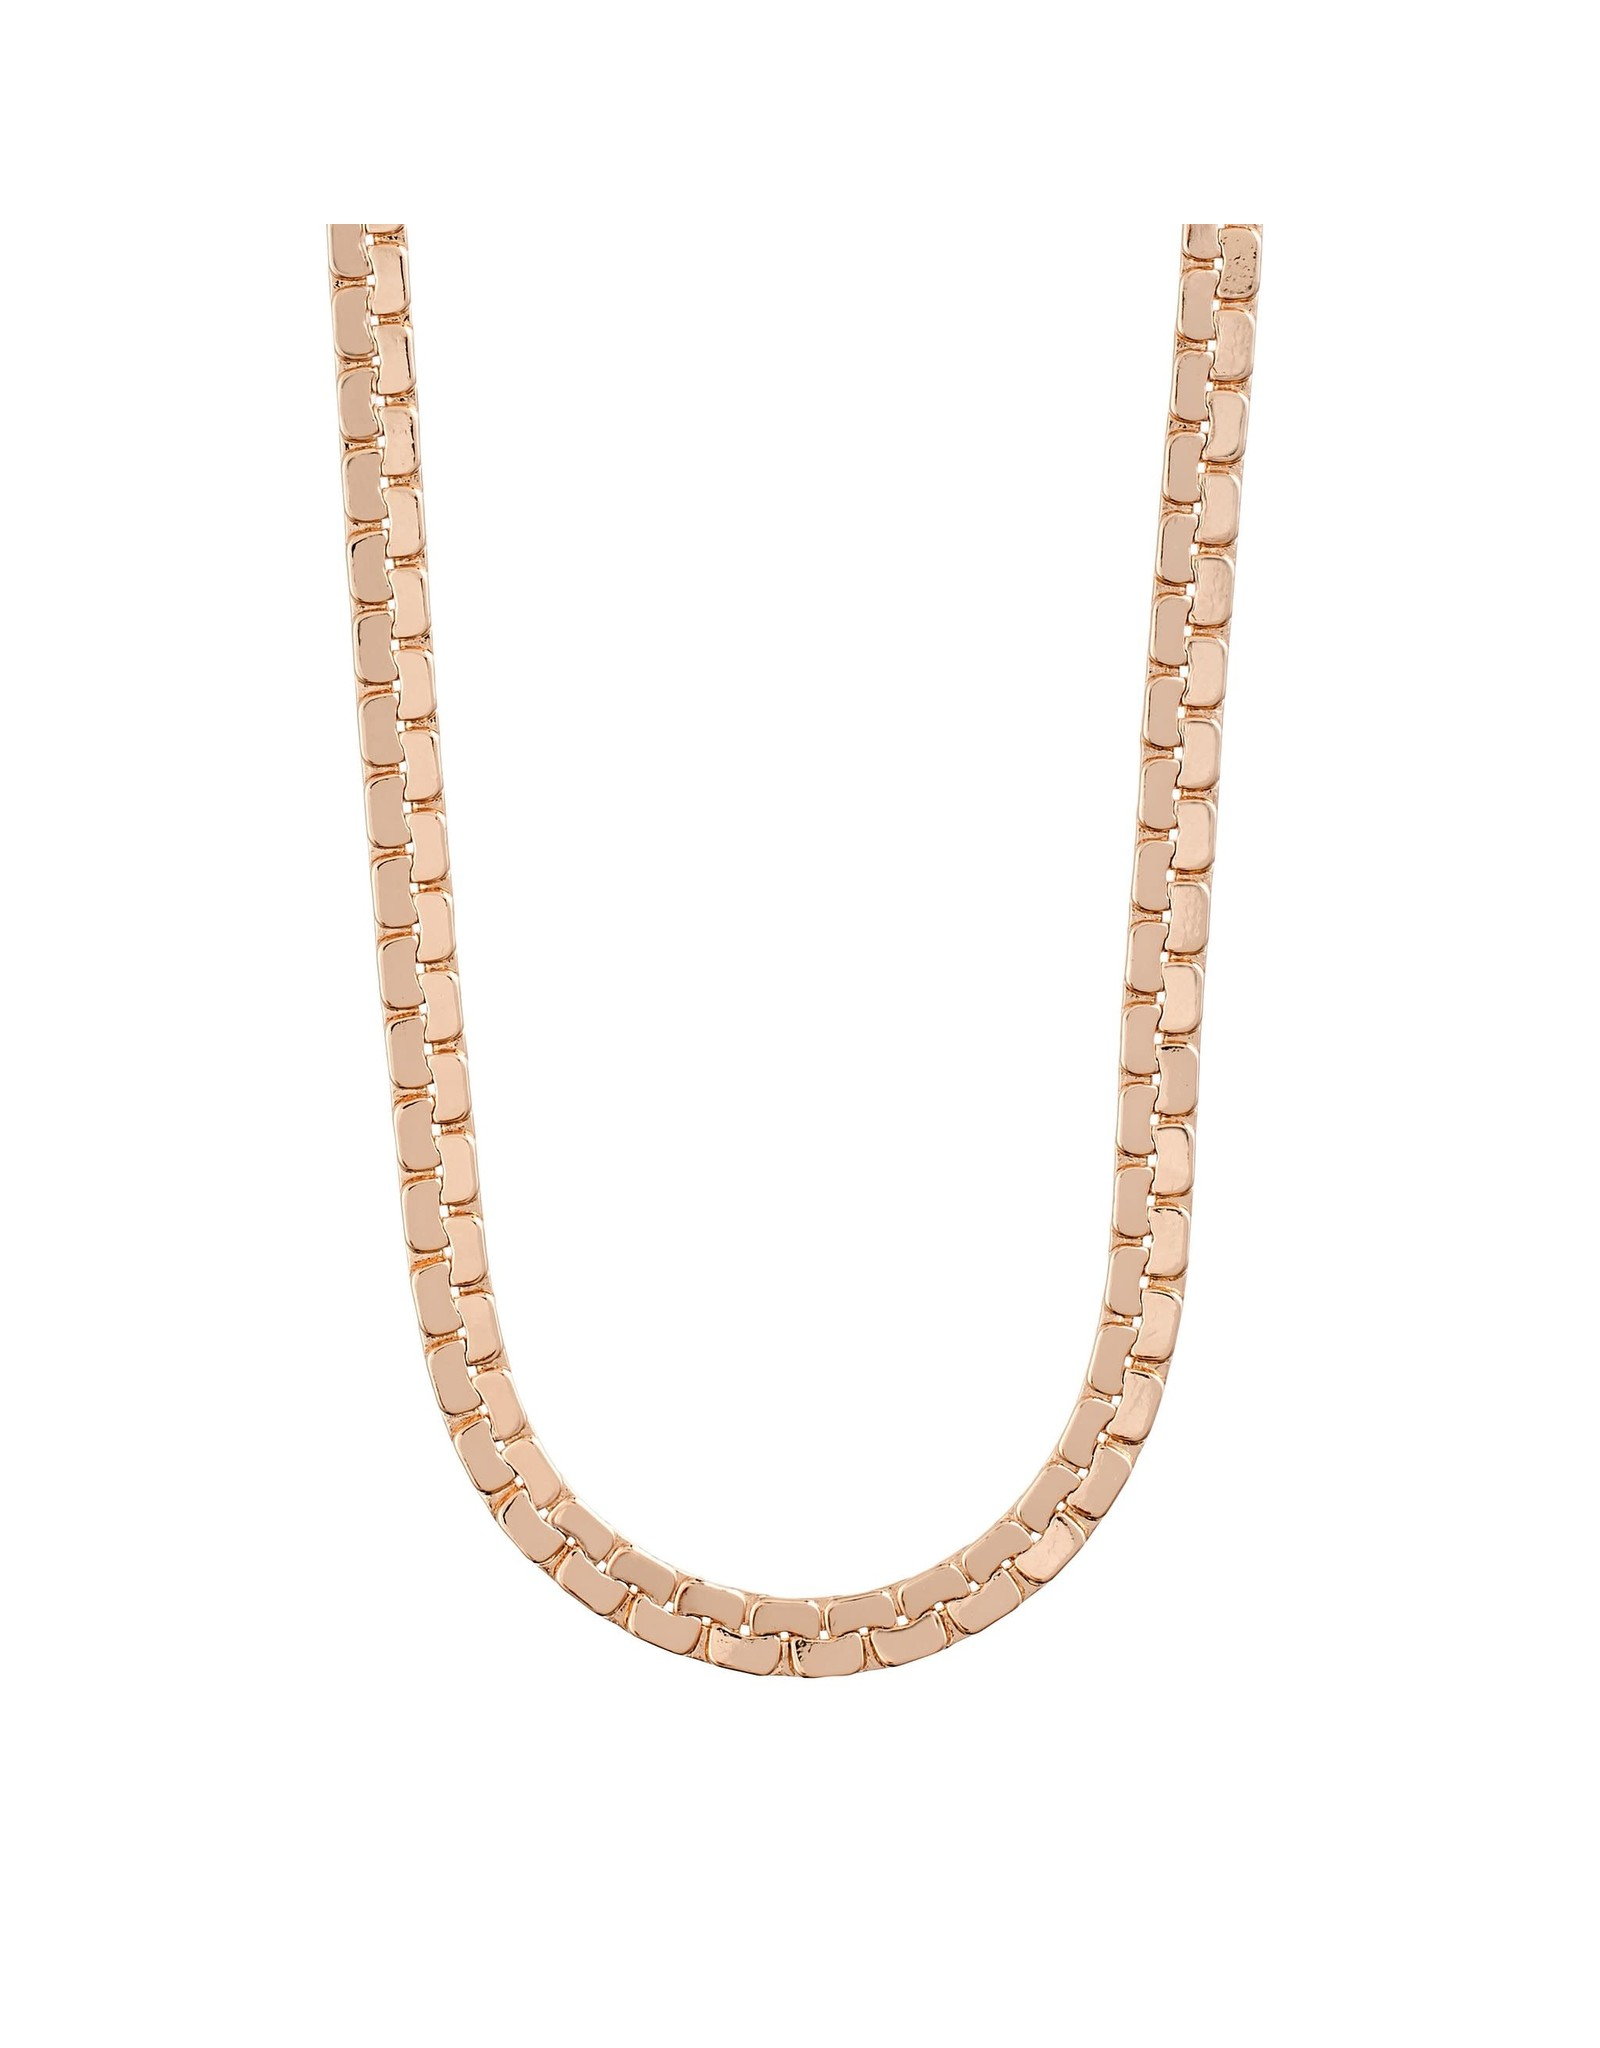 Pilgrim Pilgrim Beauty Necklace Rose Gold Plated II